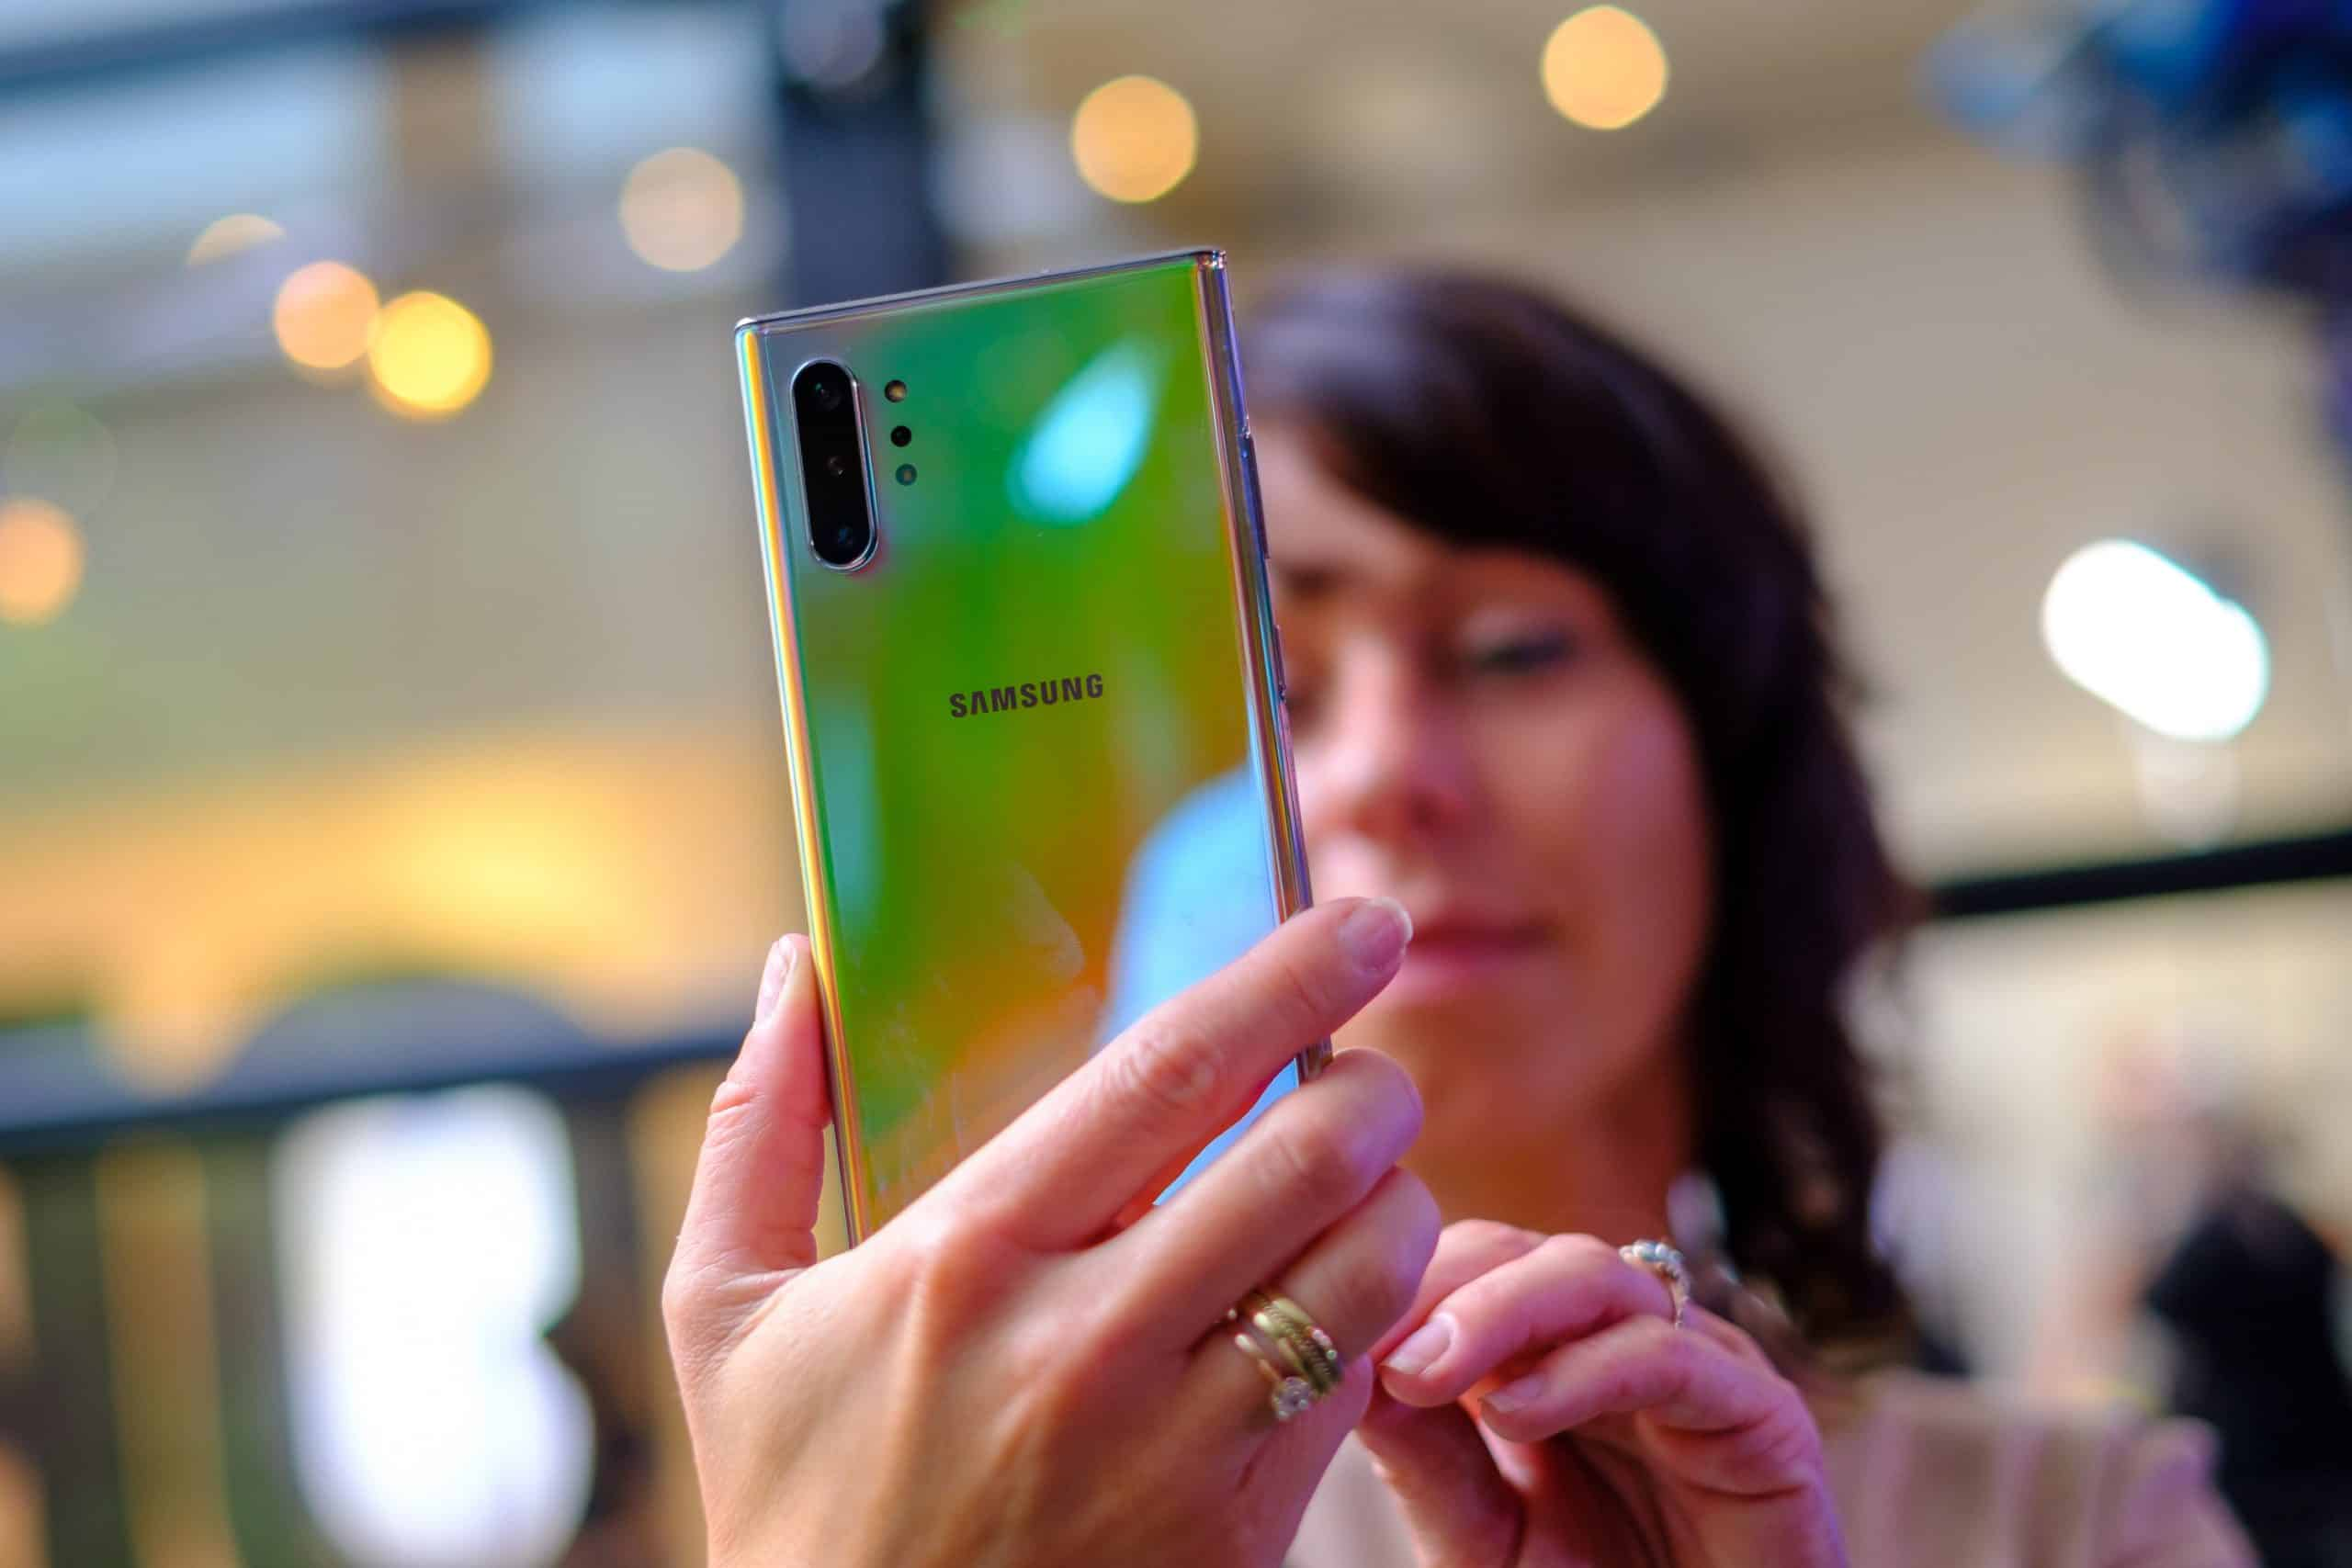 Woman holding the Galaxy Note 10 showing the Aura Glow color